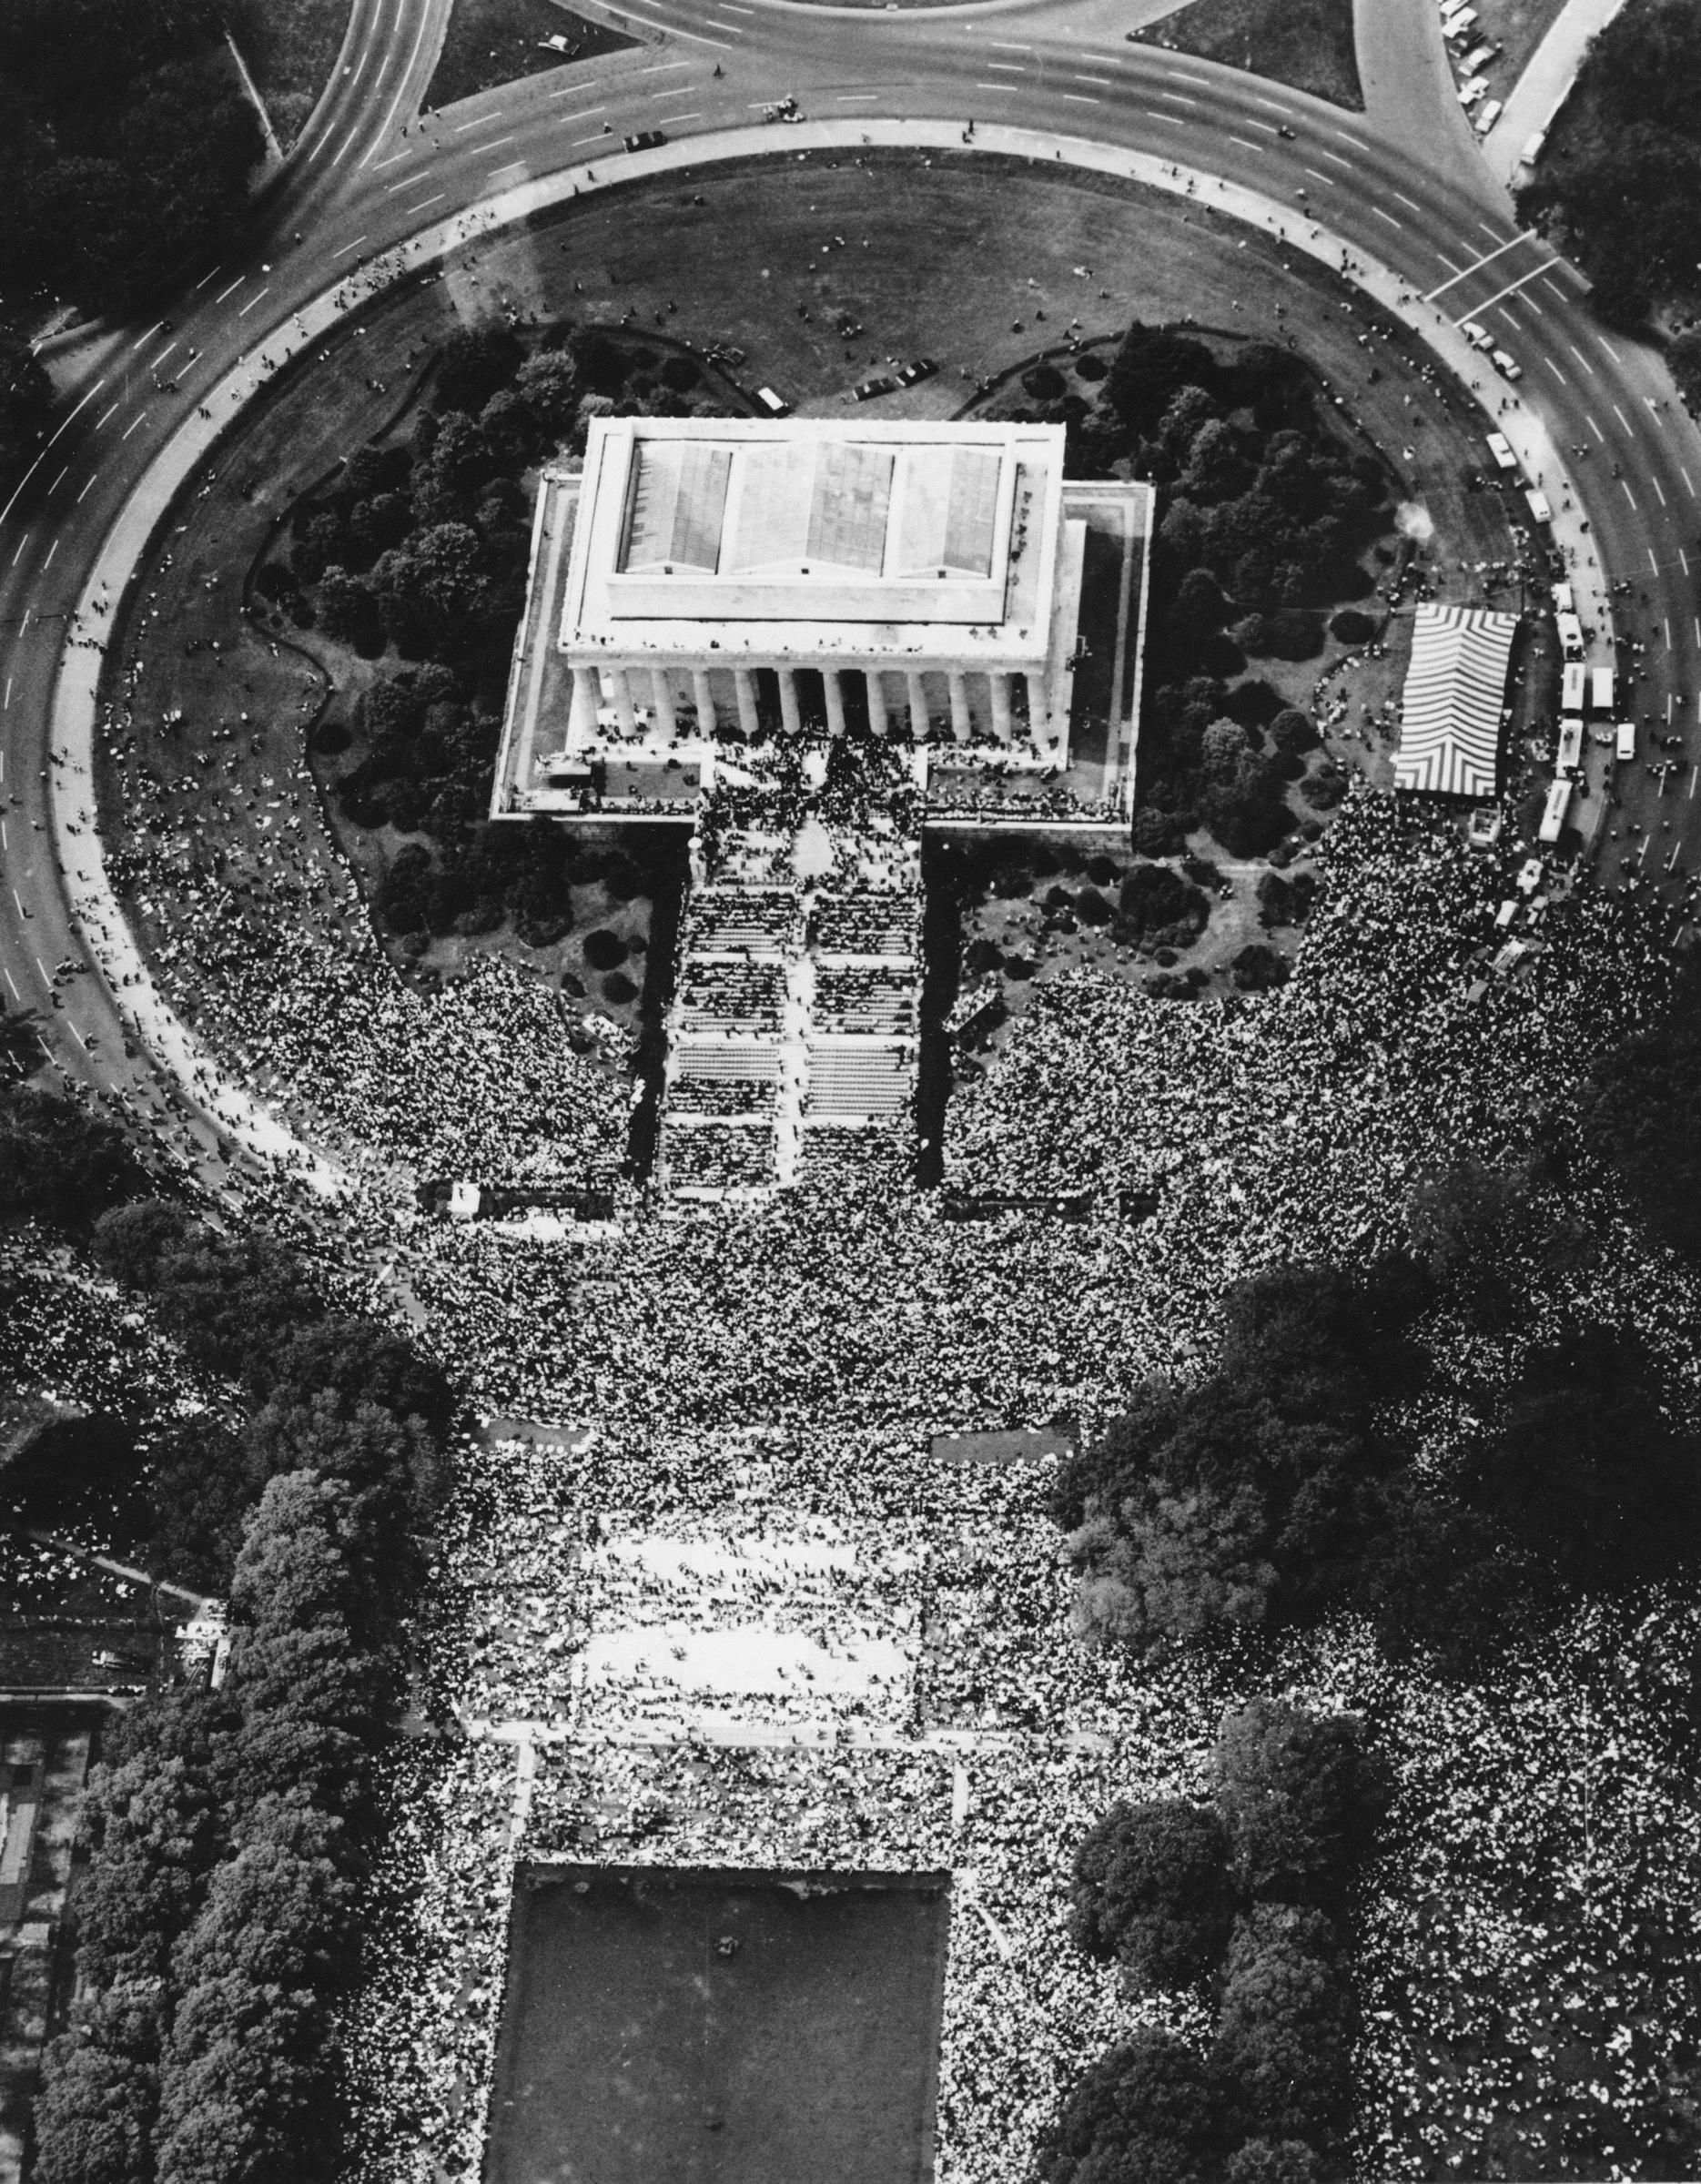 Aerial view of the crowds at the lincoln memorial in